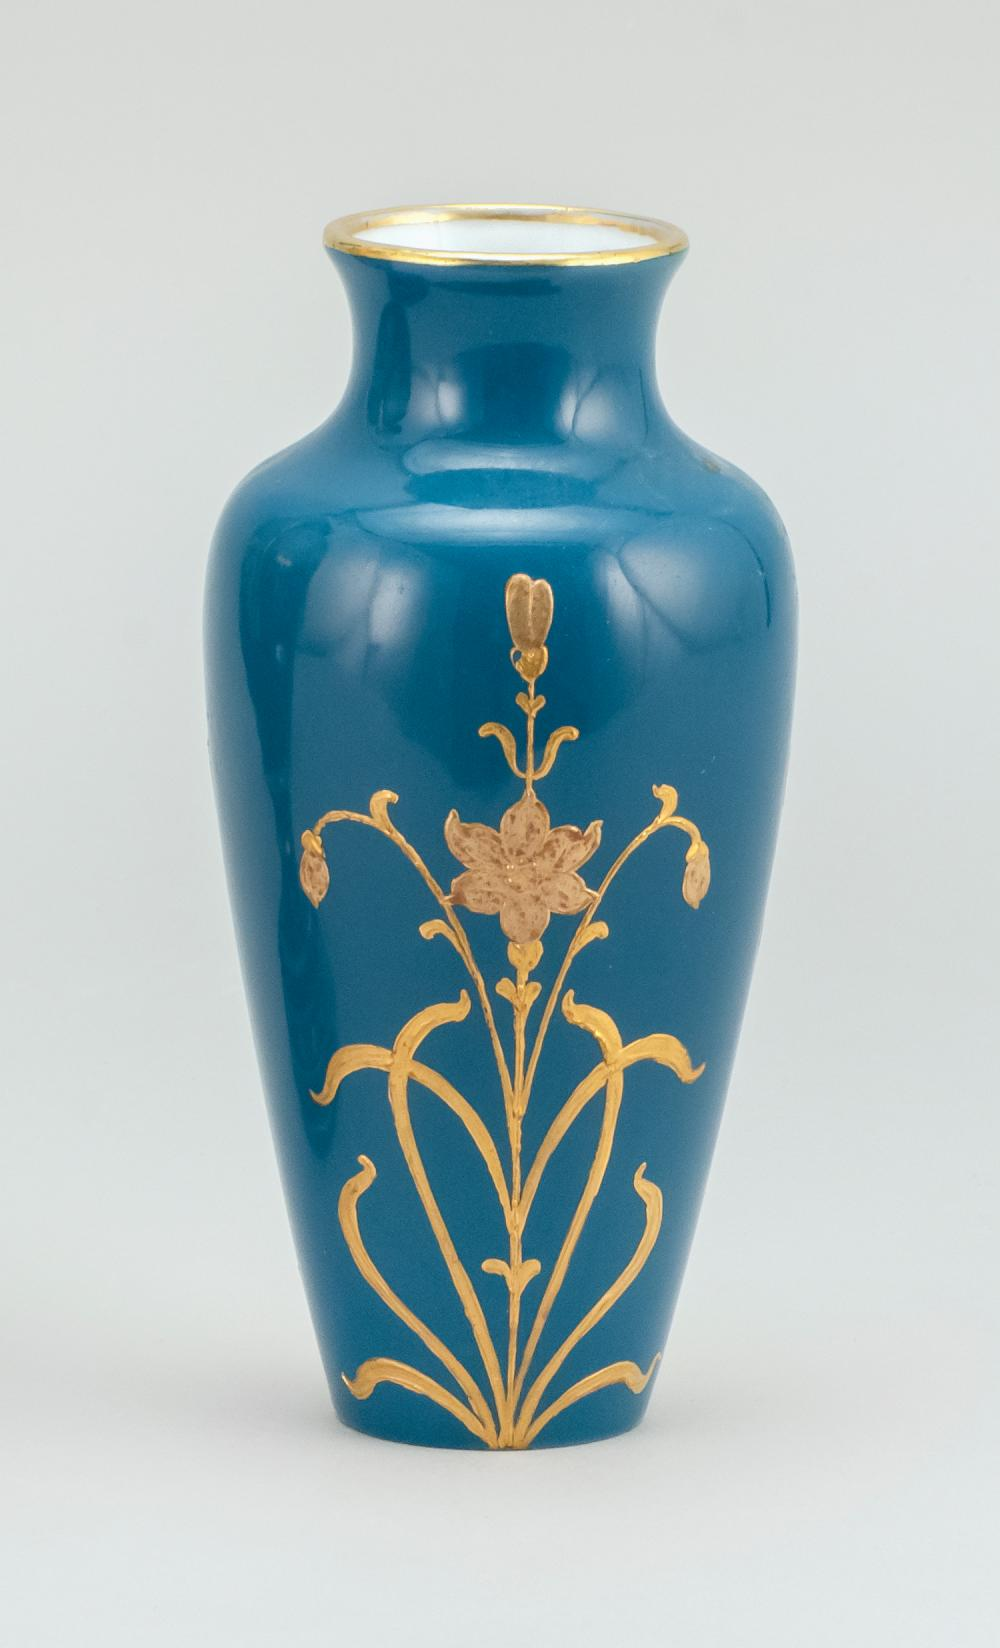 PORCELAIN VASE With an Art Nouveau-style portrait of a woman on a teal blue ground. Potter's mark on base. Height 5.6